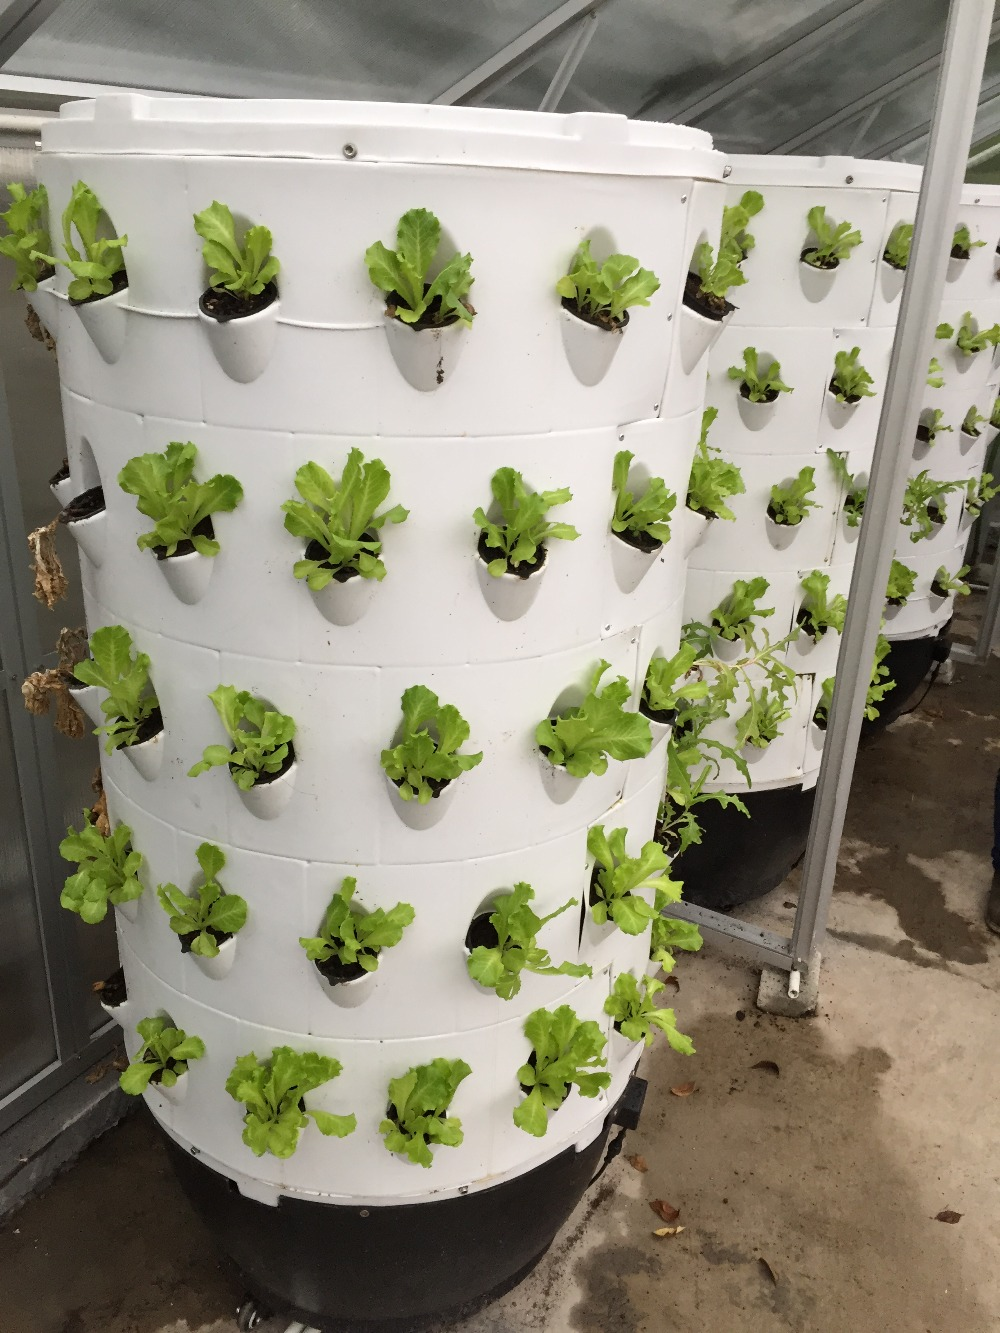 70pcs Hydroponics System Aeroponic Tower Garden For